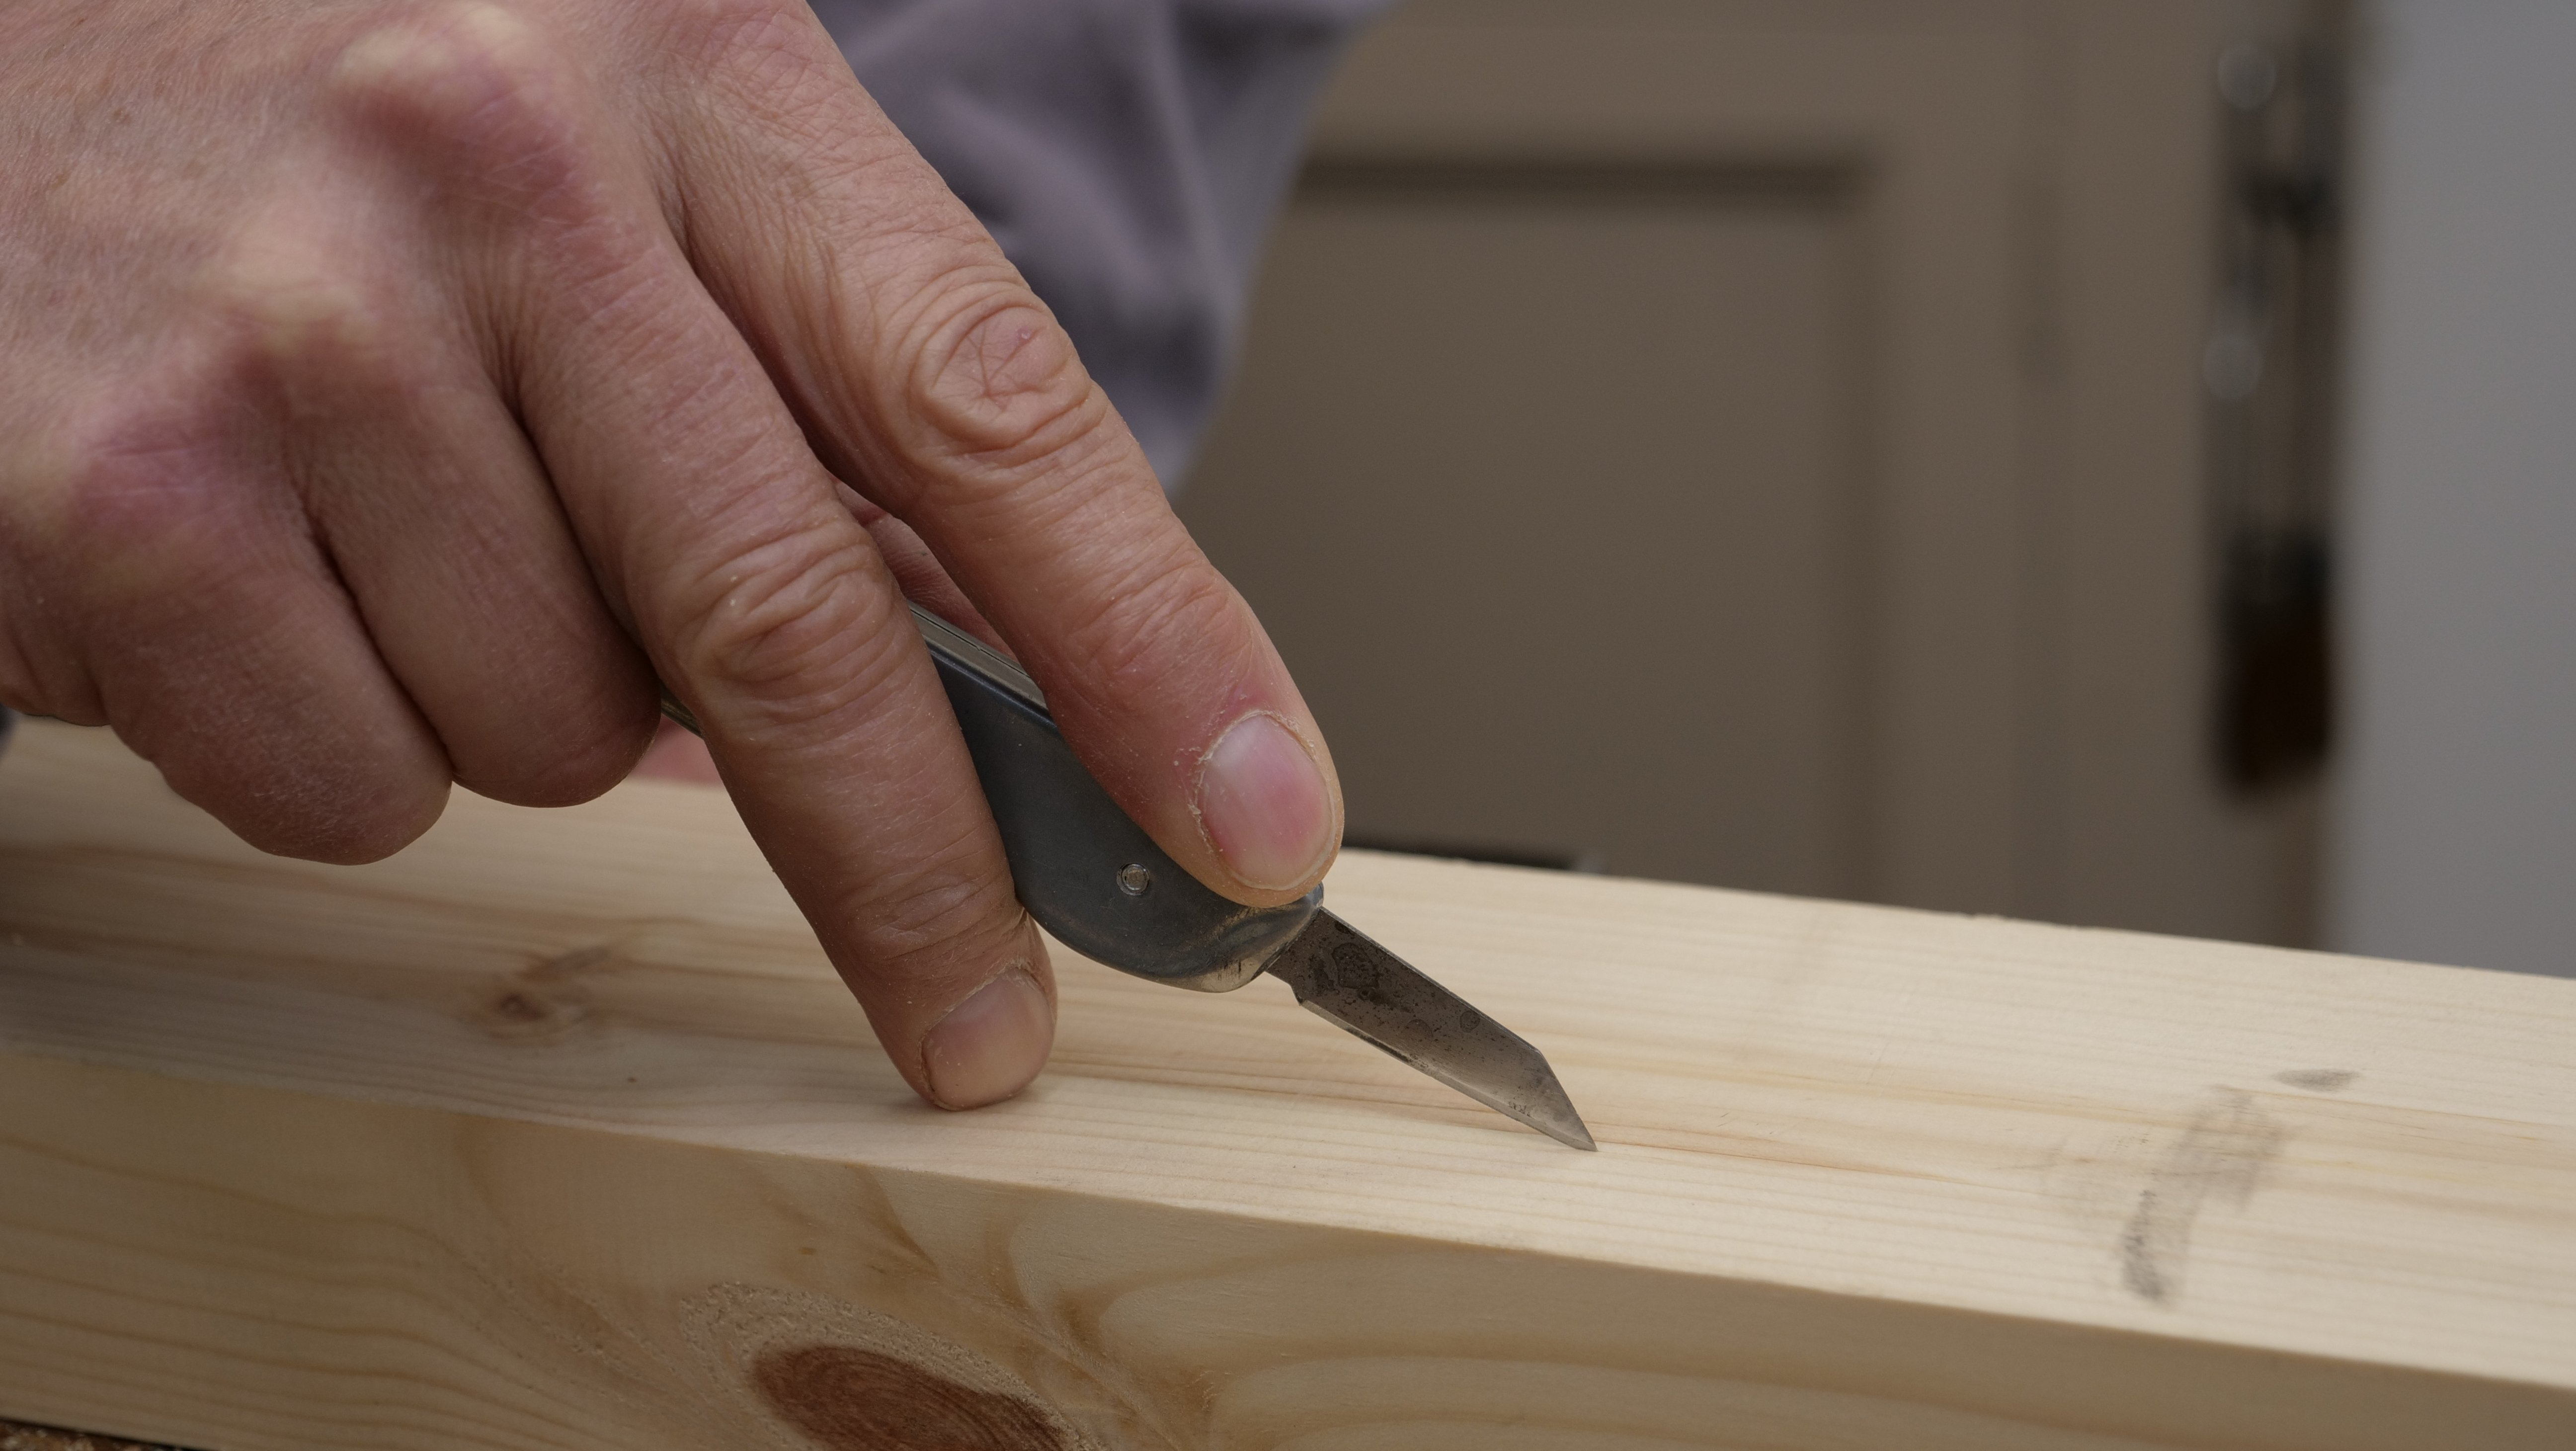 Using a woodworker's knife